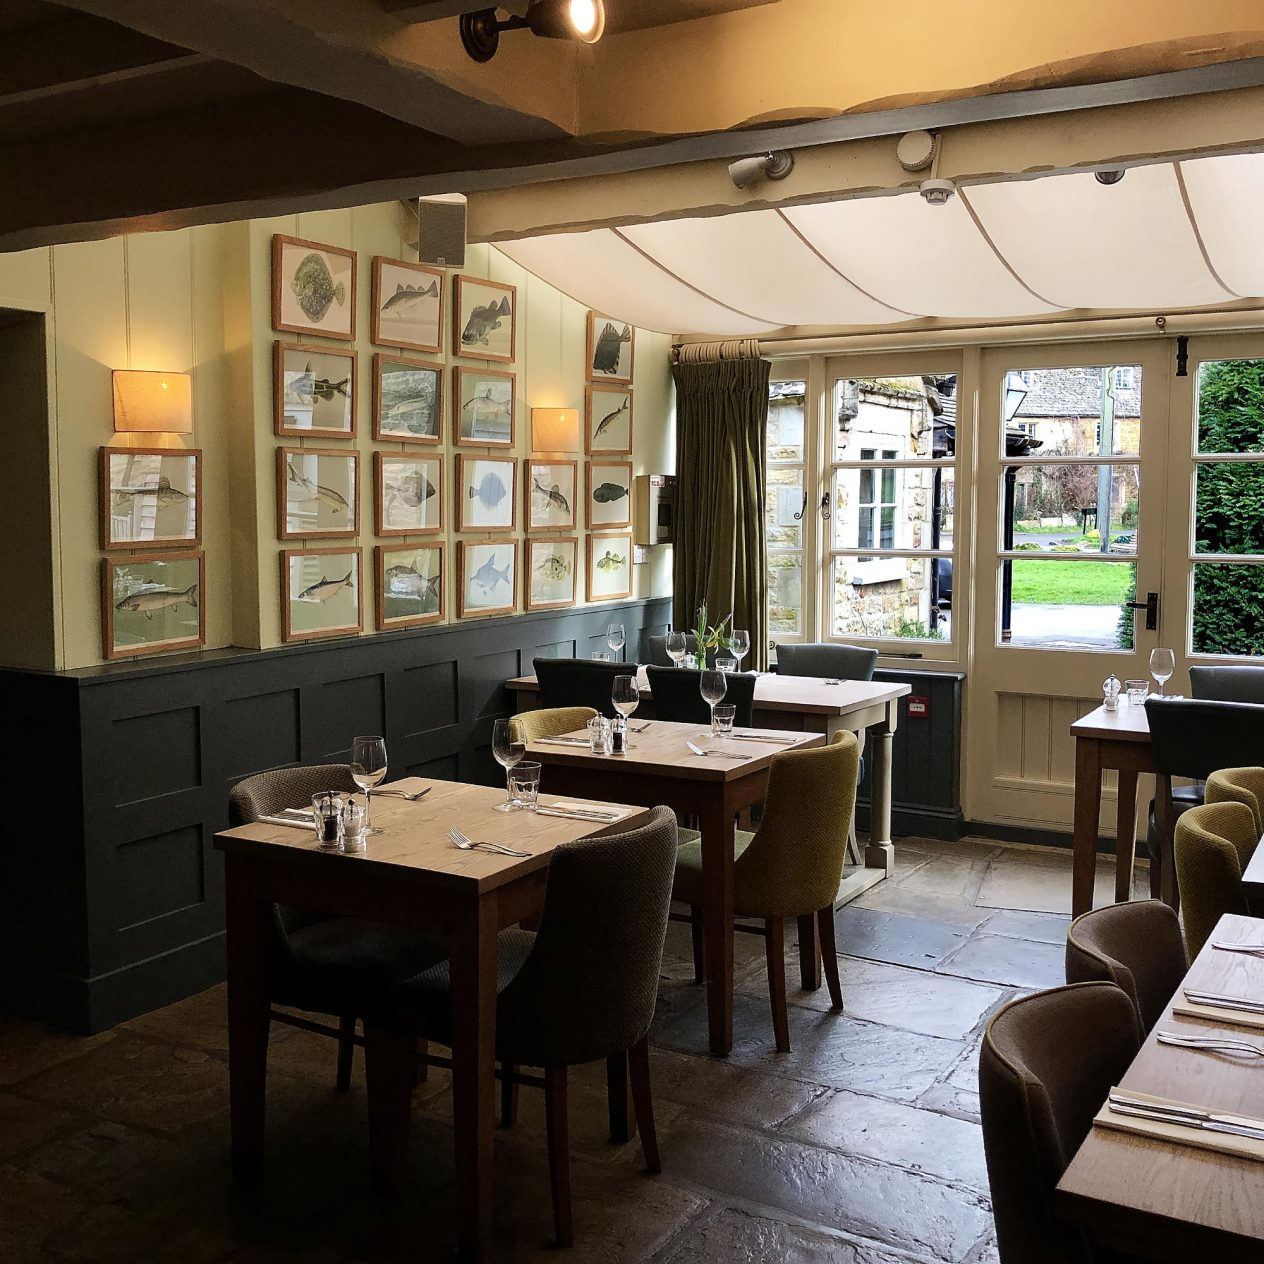 The King's Head Inn Bledington Oxfordshire - Restaurant & Pub with Rooms - Restaurant